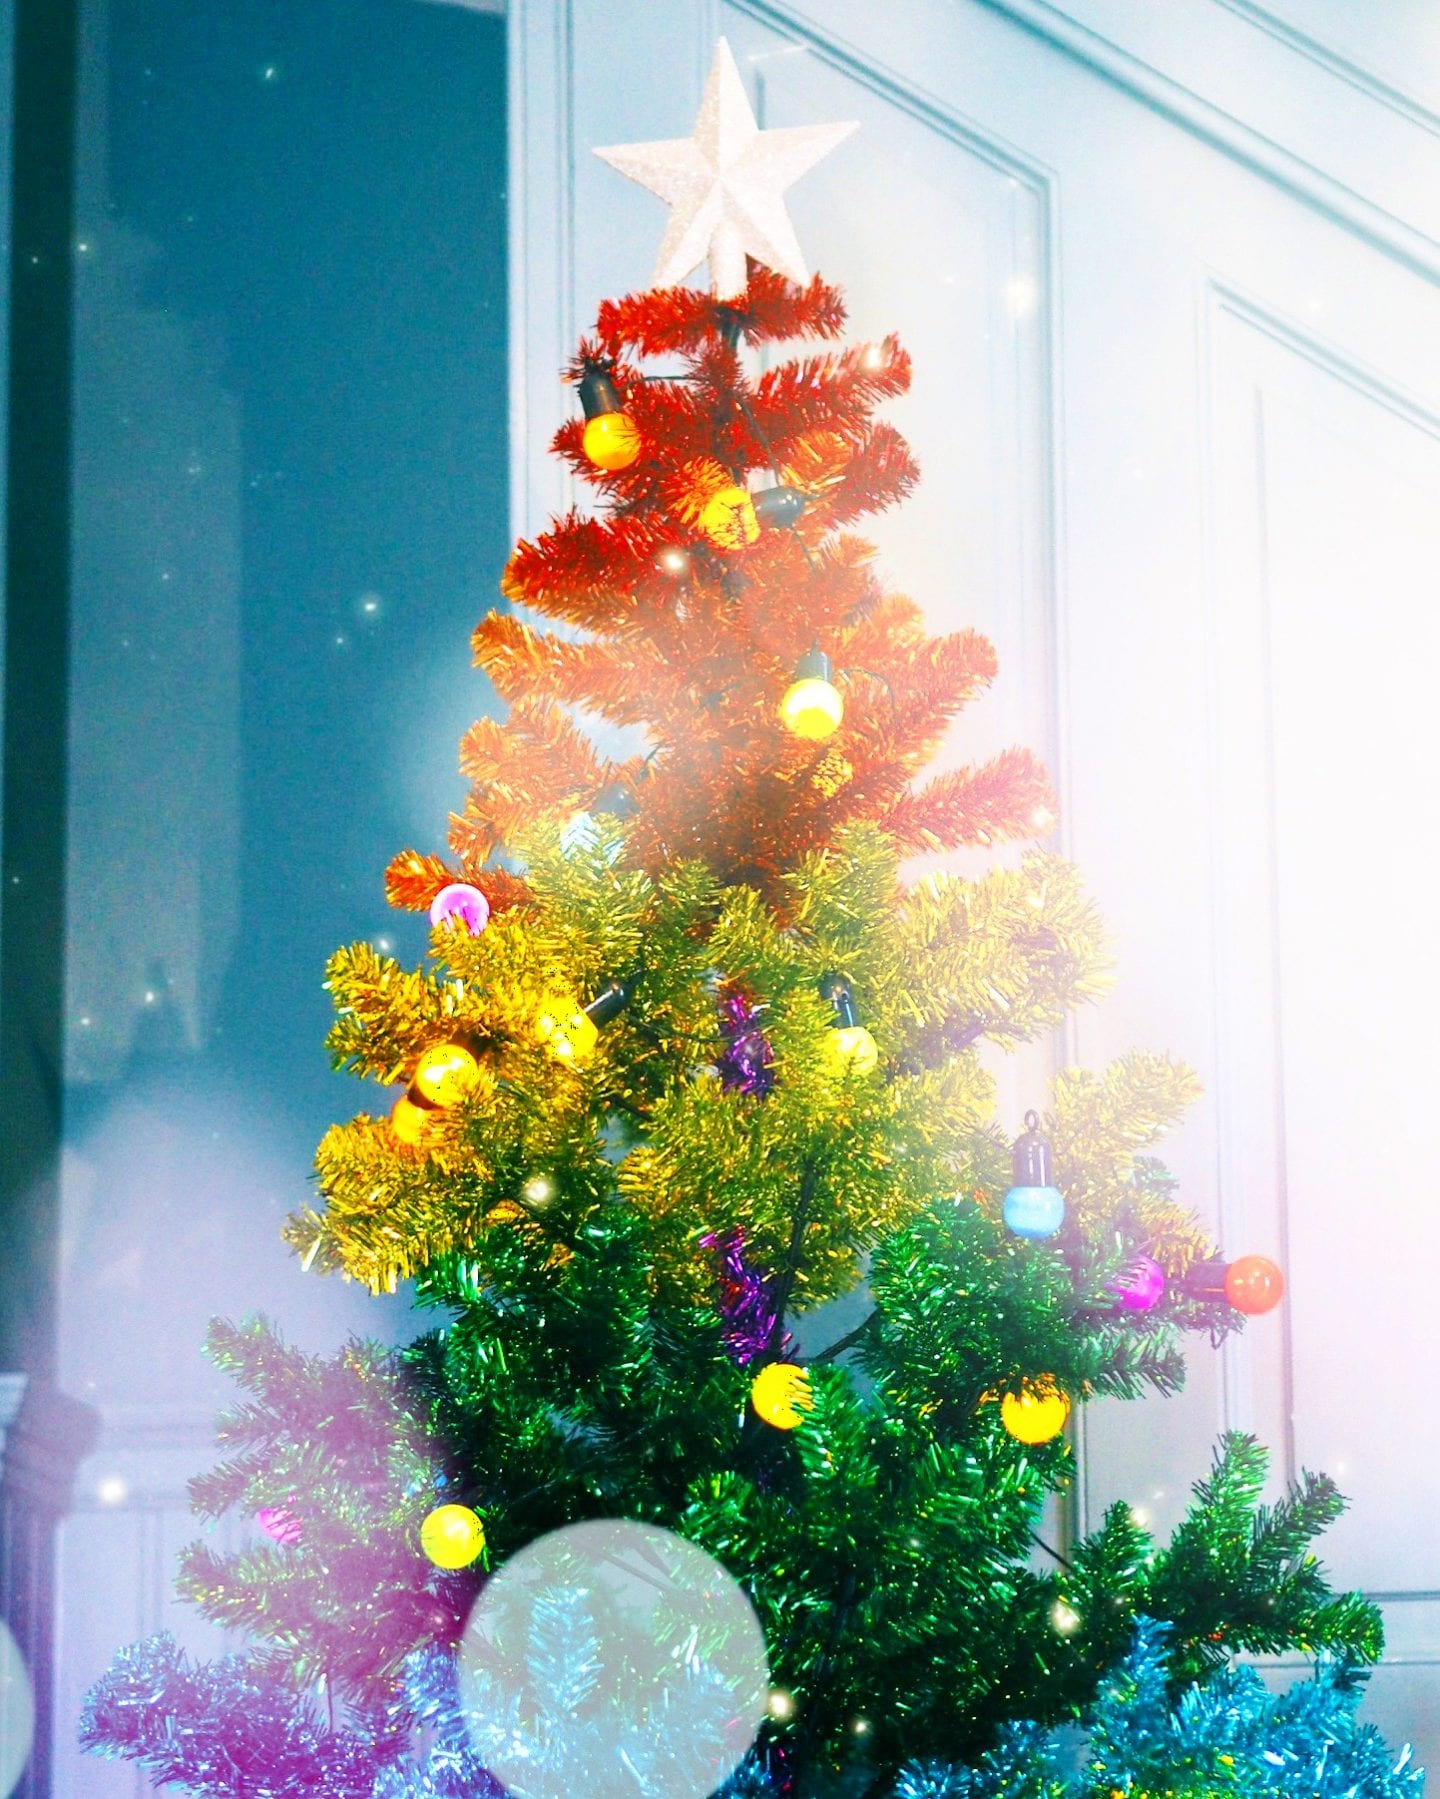 fashion-for-lunch-blog-home-christmas-house-colourful-colour-holiday-decorations-rainbow-christmas-tree-paperchase-luxury-color-colorful